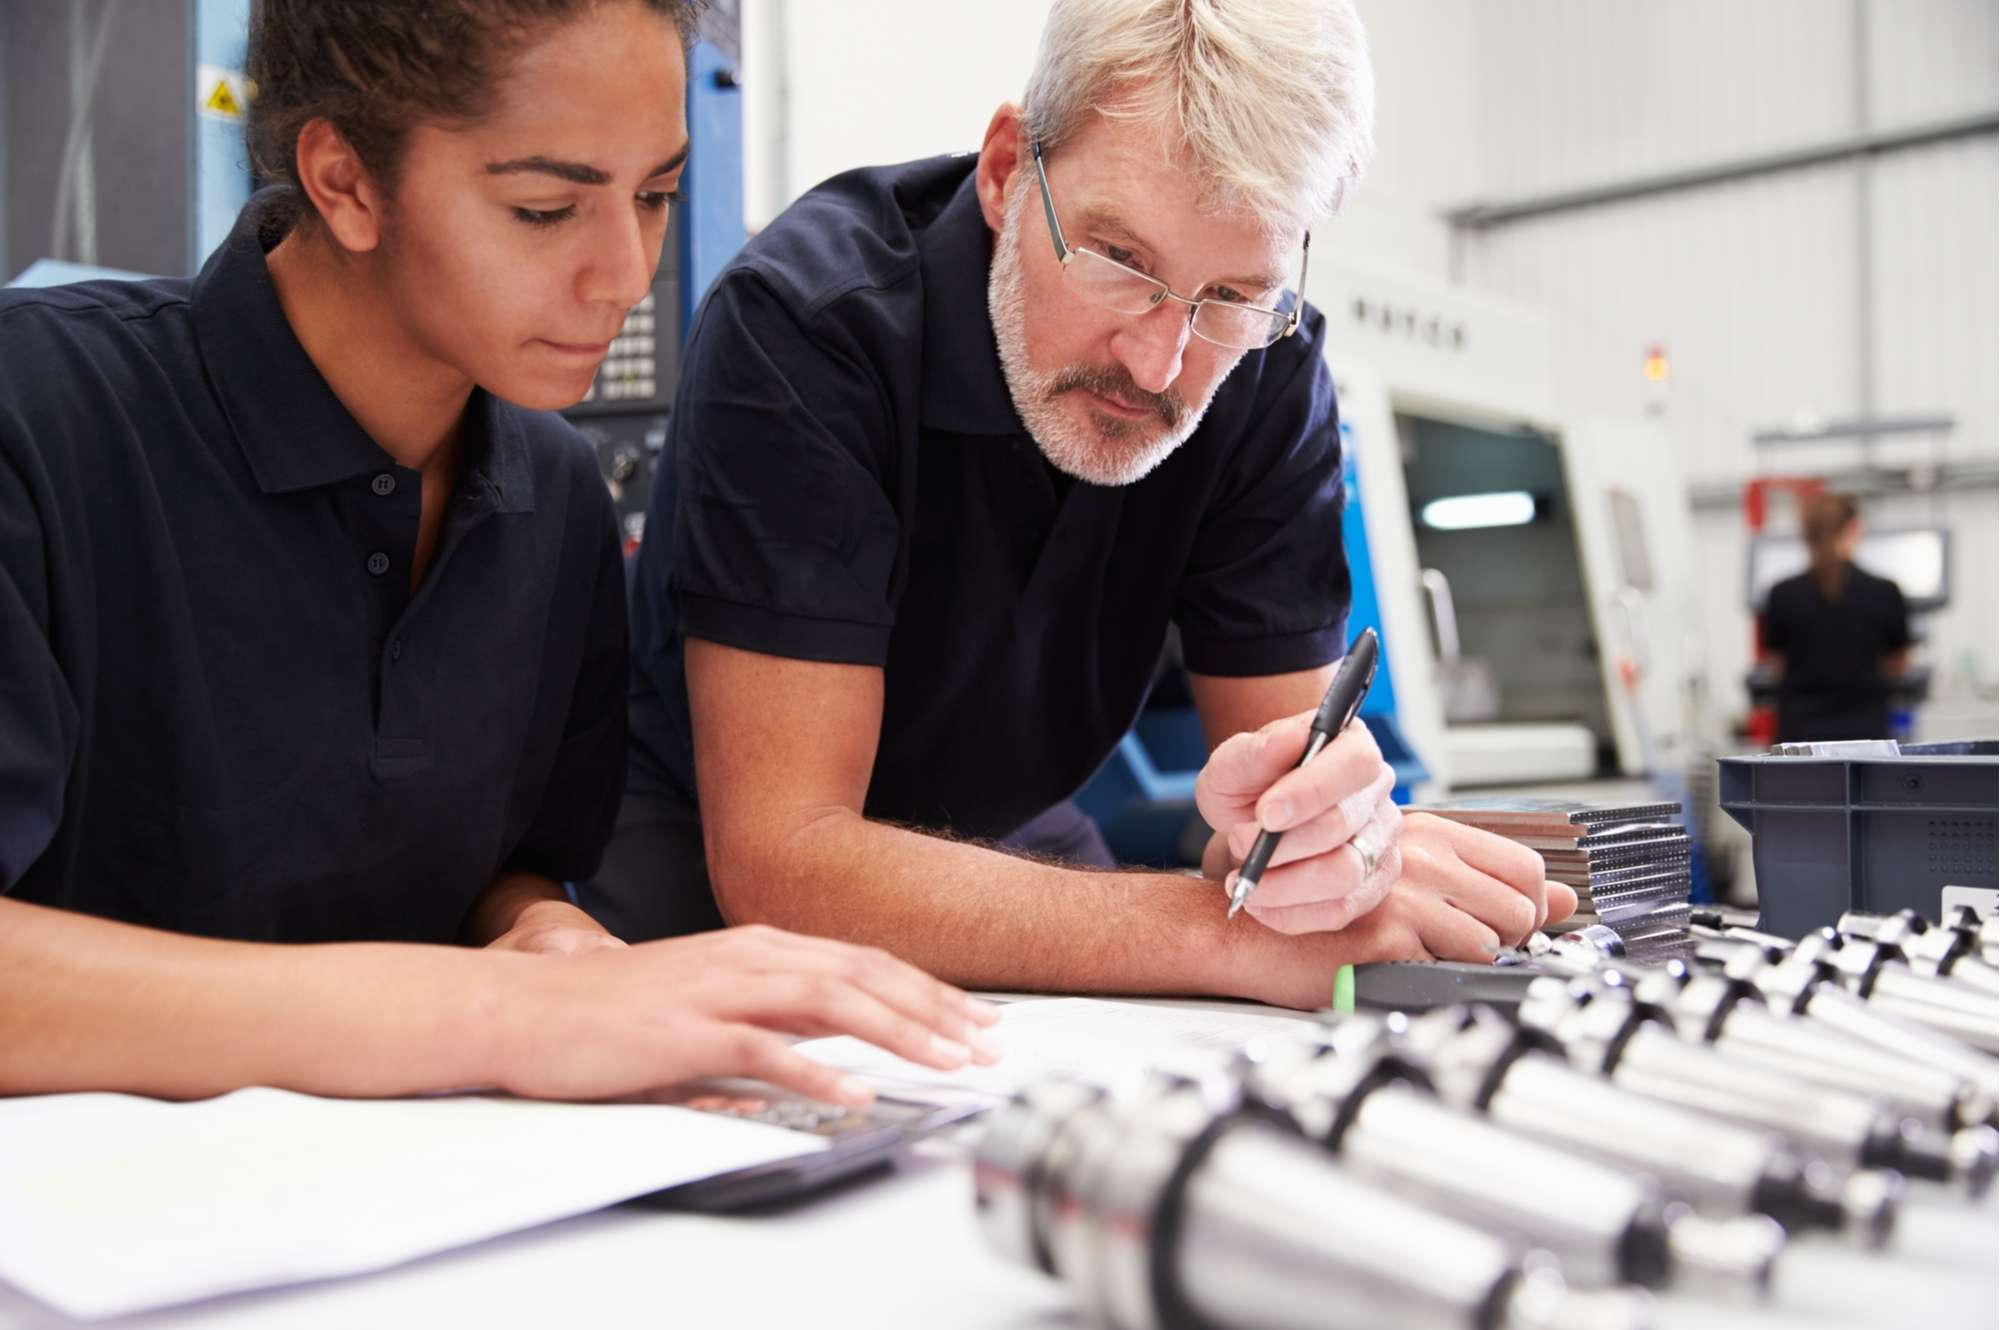 No need to debate education vs experience – choose an apprenticeship